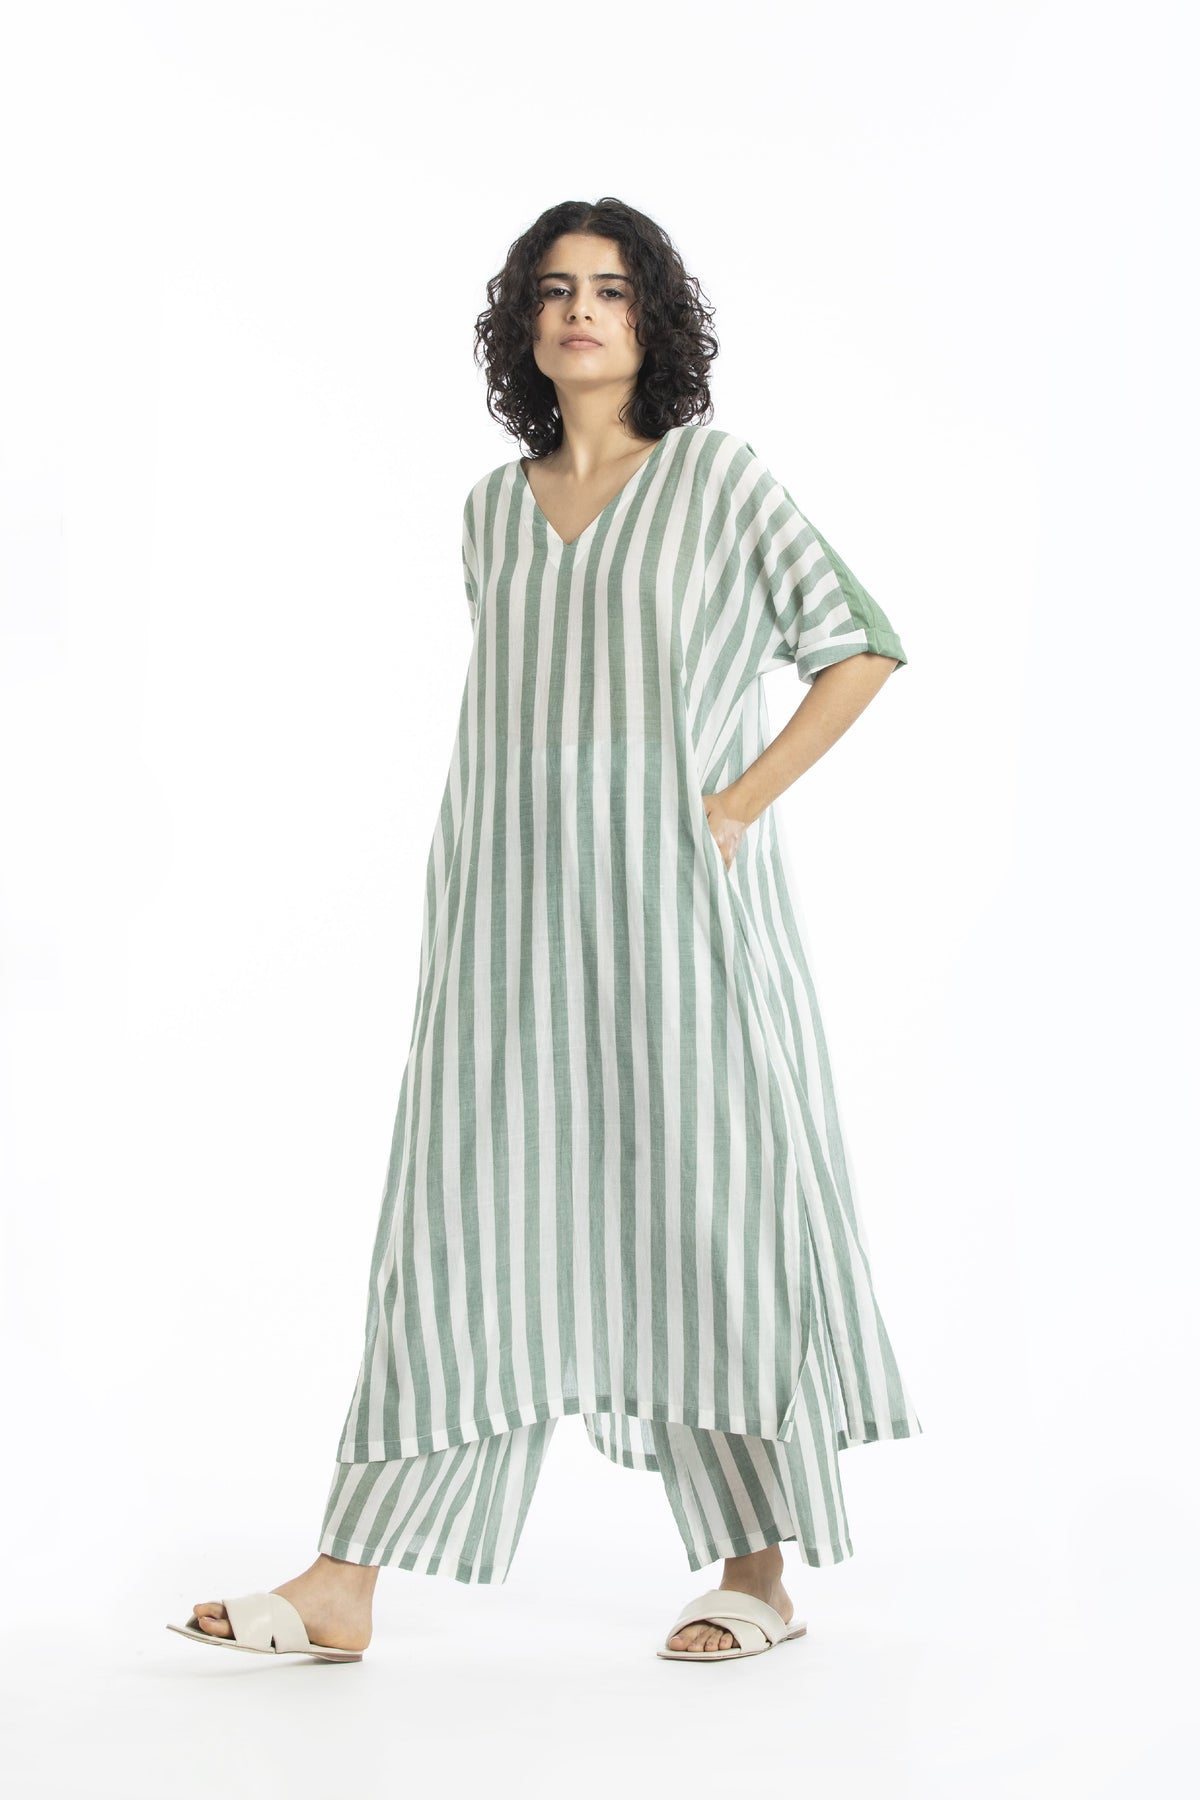 Three Shirts & Tops Pure cotton poplin striped top